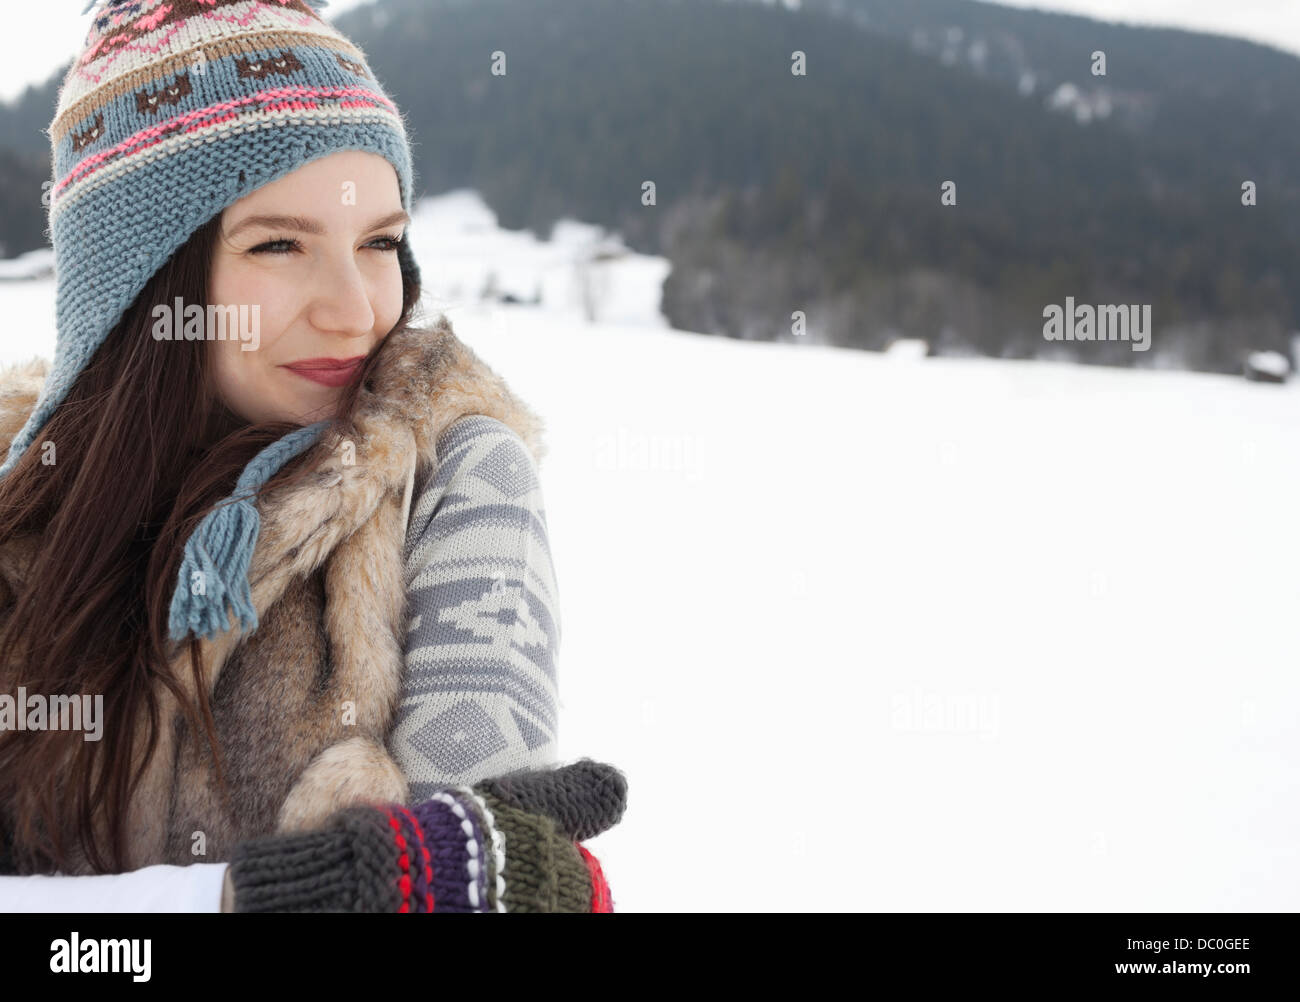 Happy woman wearing knit hat and gloves in snowy field - Stock Image